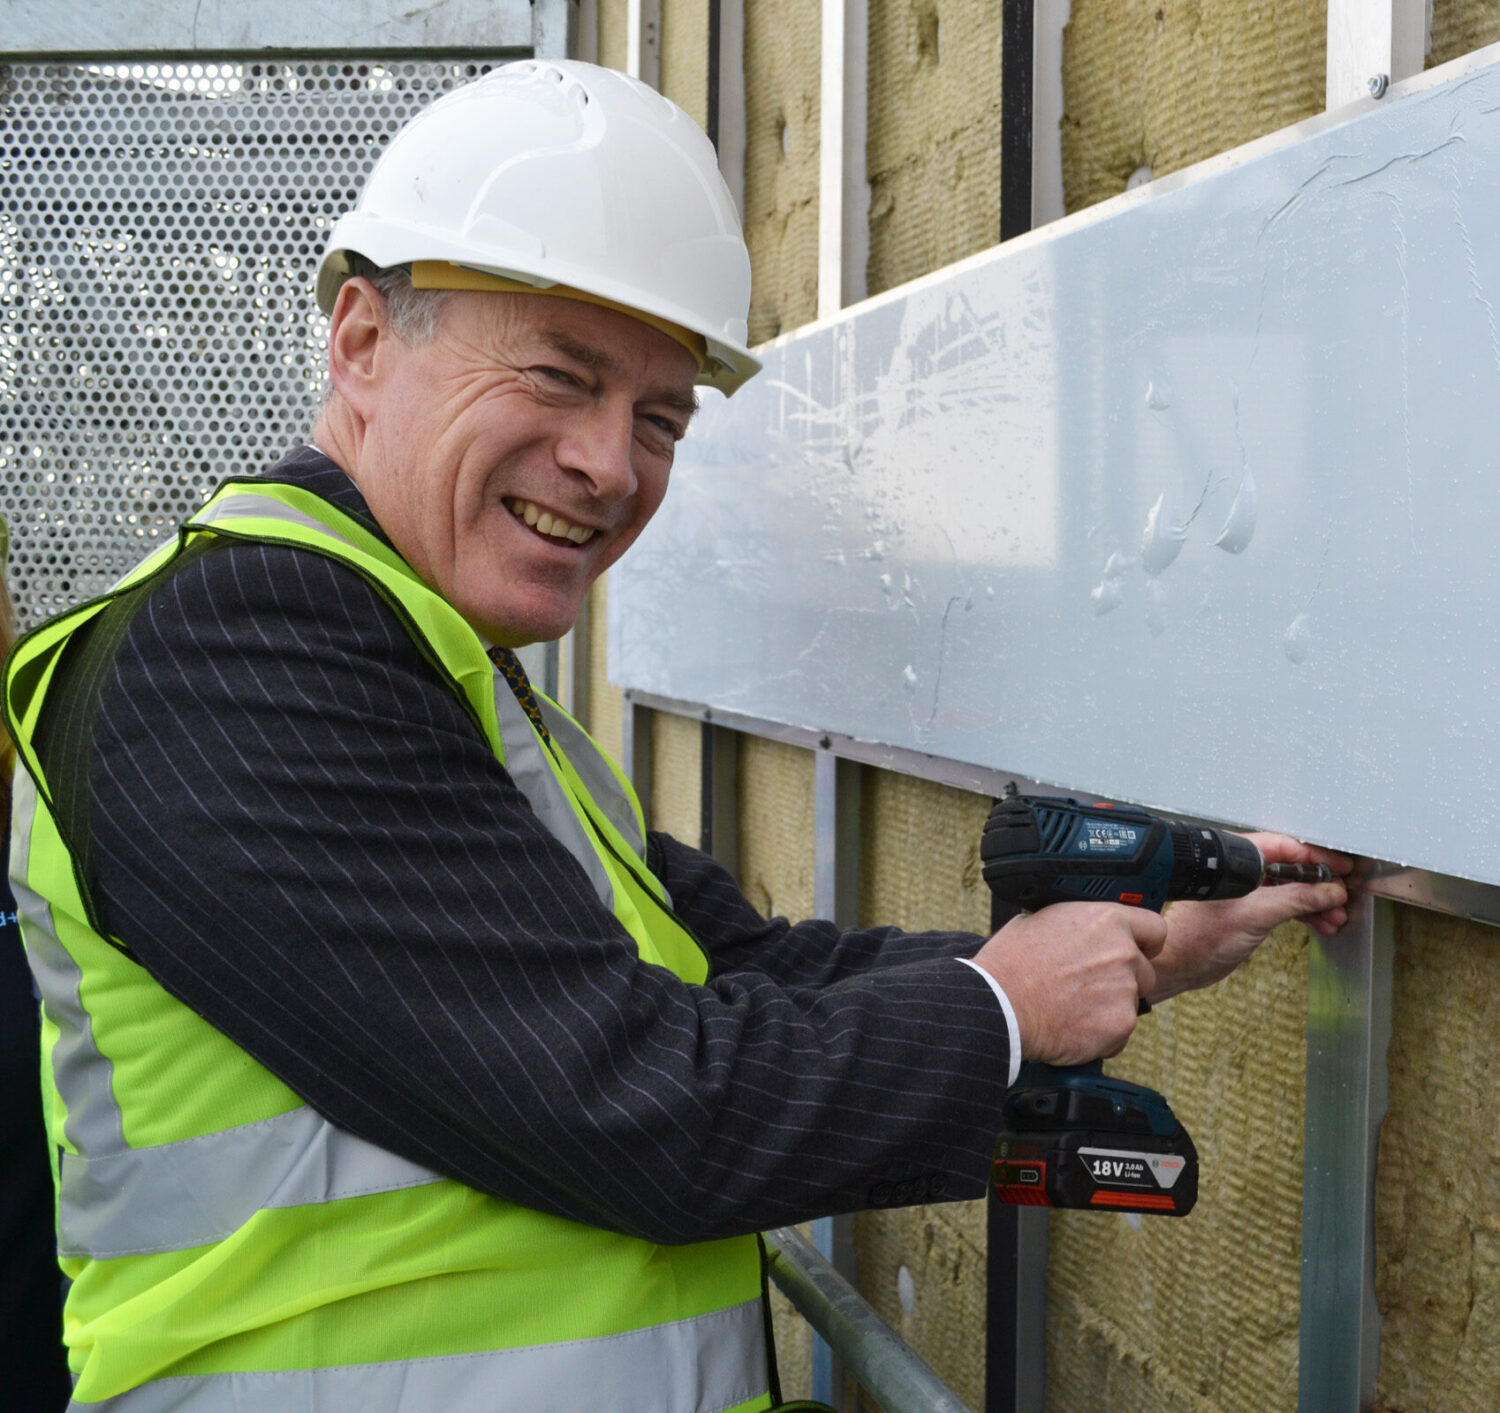 Ian Pryce putting on first cladding pannel at Wellingborough